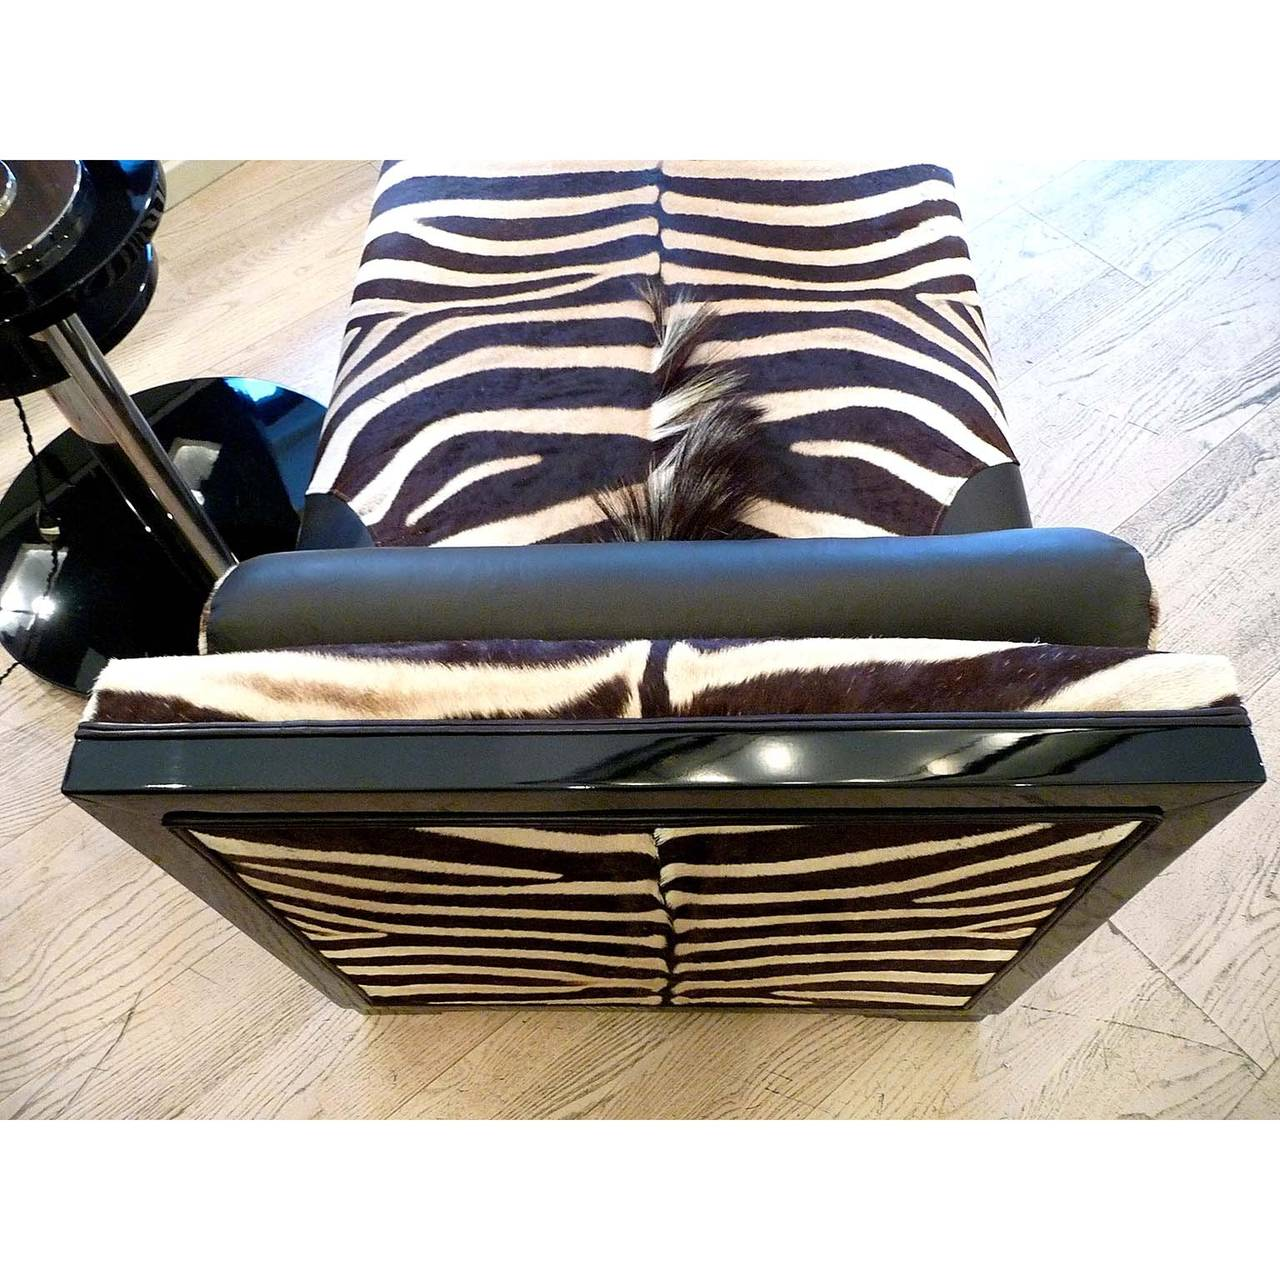 exquisite art deco french chaise longue with zebra skin for sale at 1stdibs. Black Bedroom Furniture Sets. Home Design Ideas